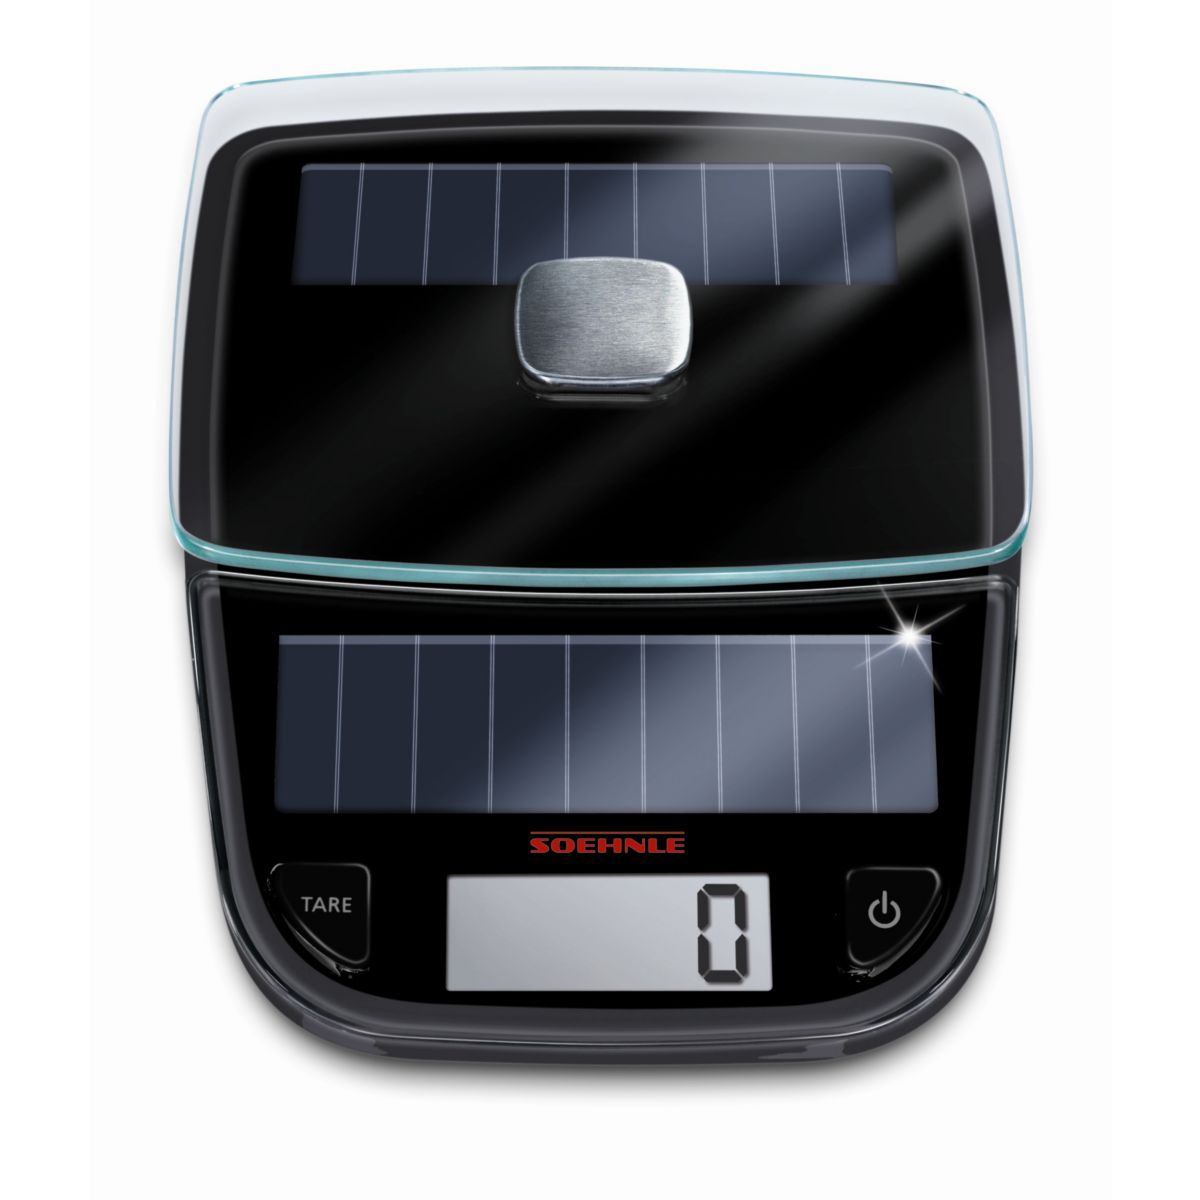 soehnle solar balance culinaire solaire 5kg comparer avec. Black Bedroom Furniture Sets. Home Design Ideas